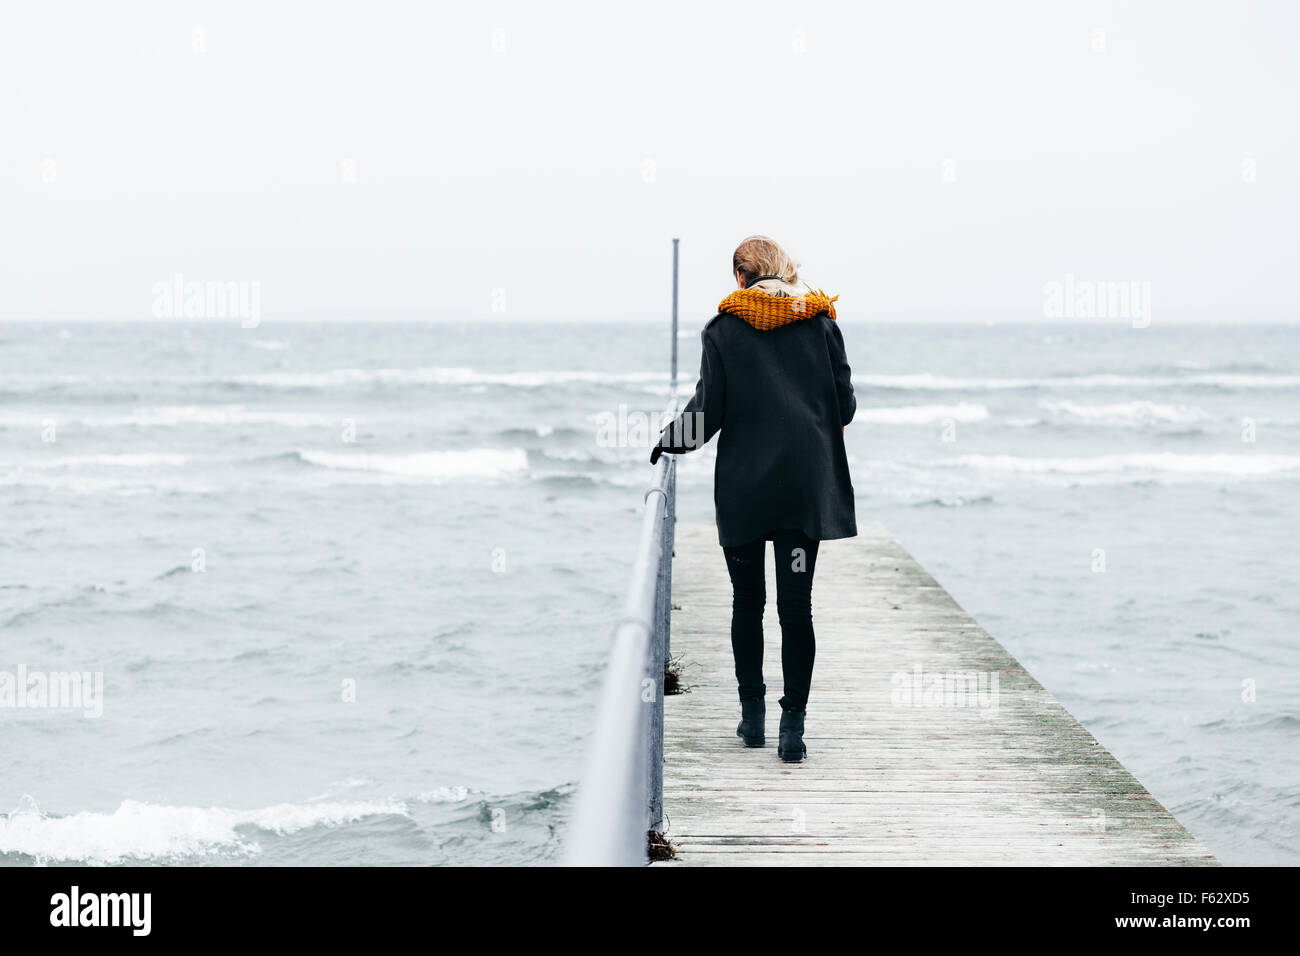 Full length rear view of woman walking on pier over sea - Stock Image